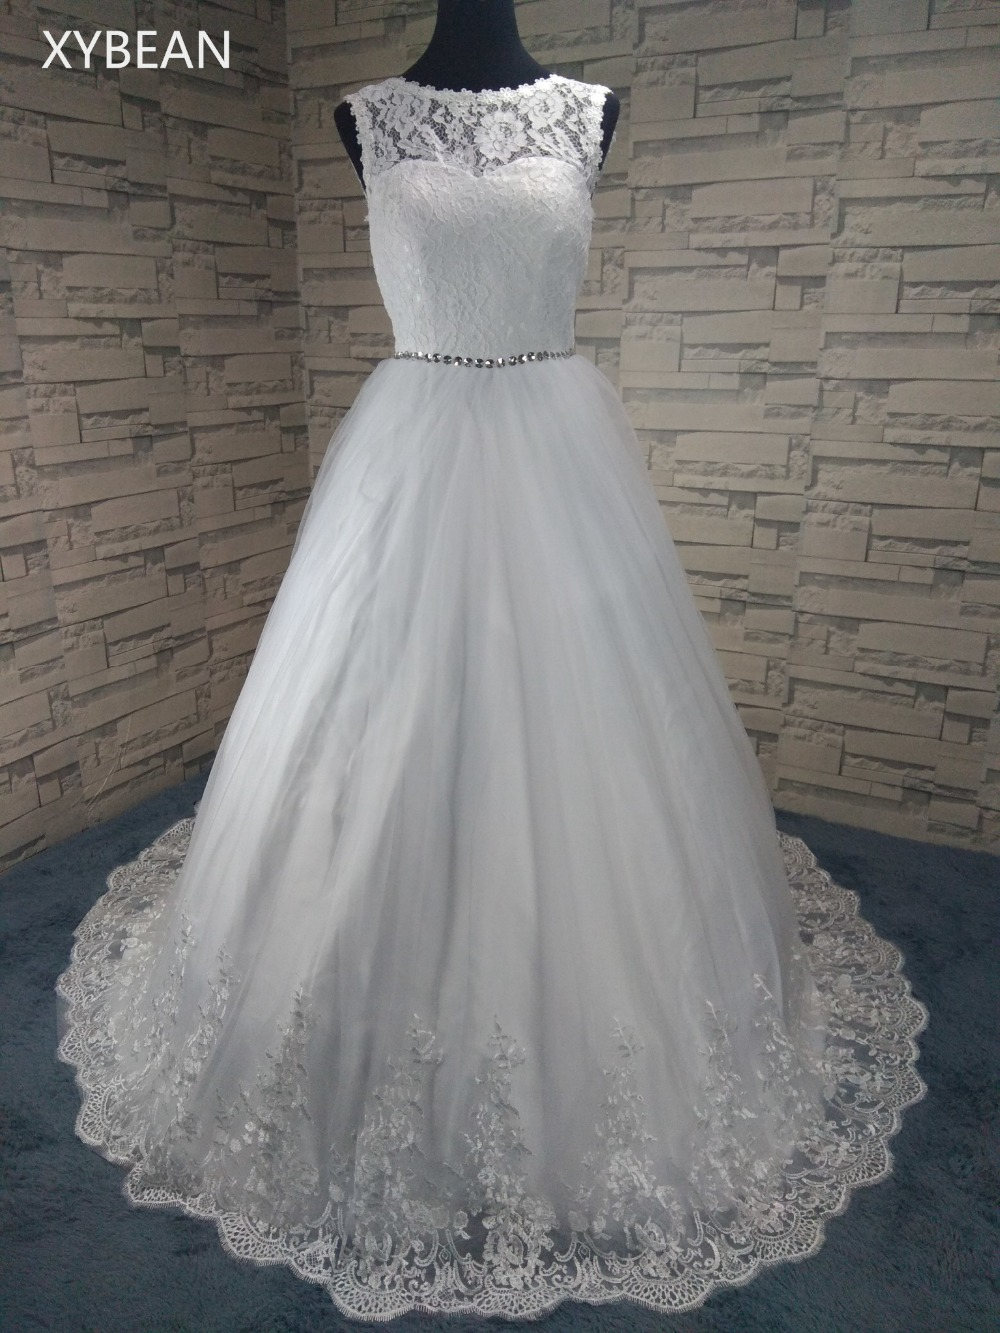 See Through Neckline Sweetheart spaghetti straps silky organza Lace Victorian Ball Gown white/Ivory Wedding Dresses FS1102